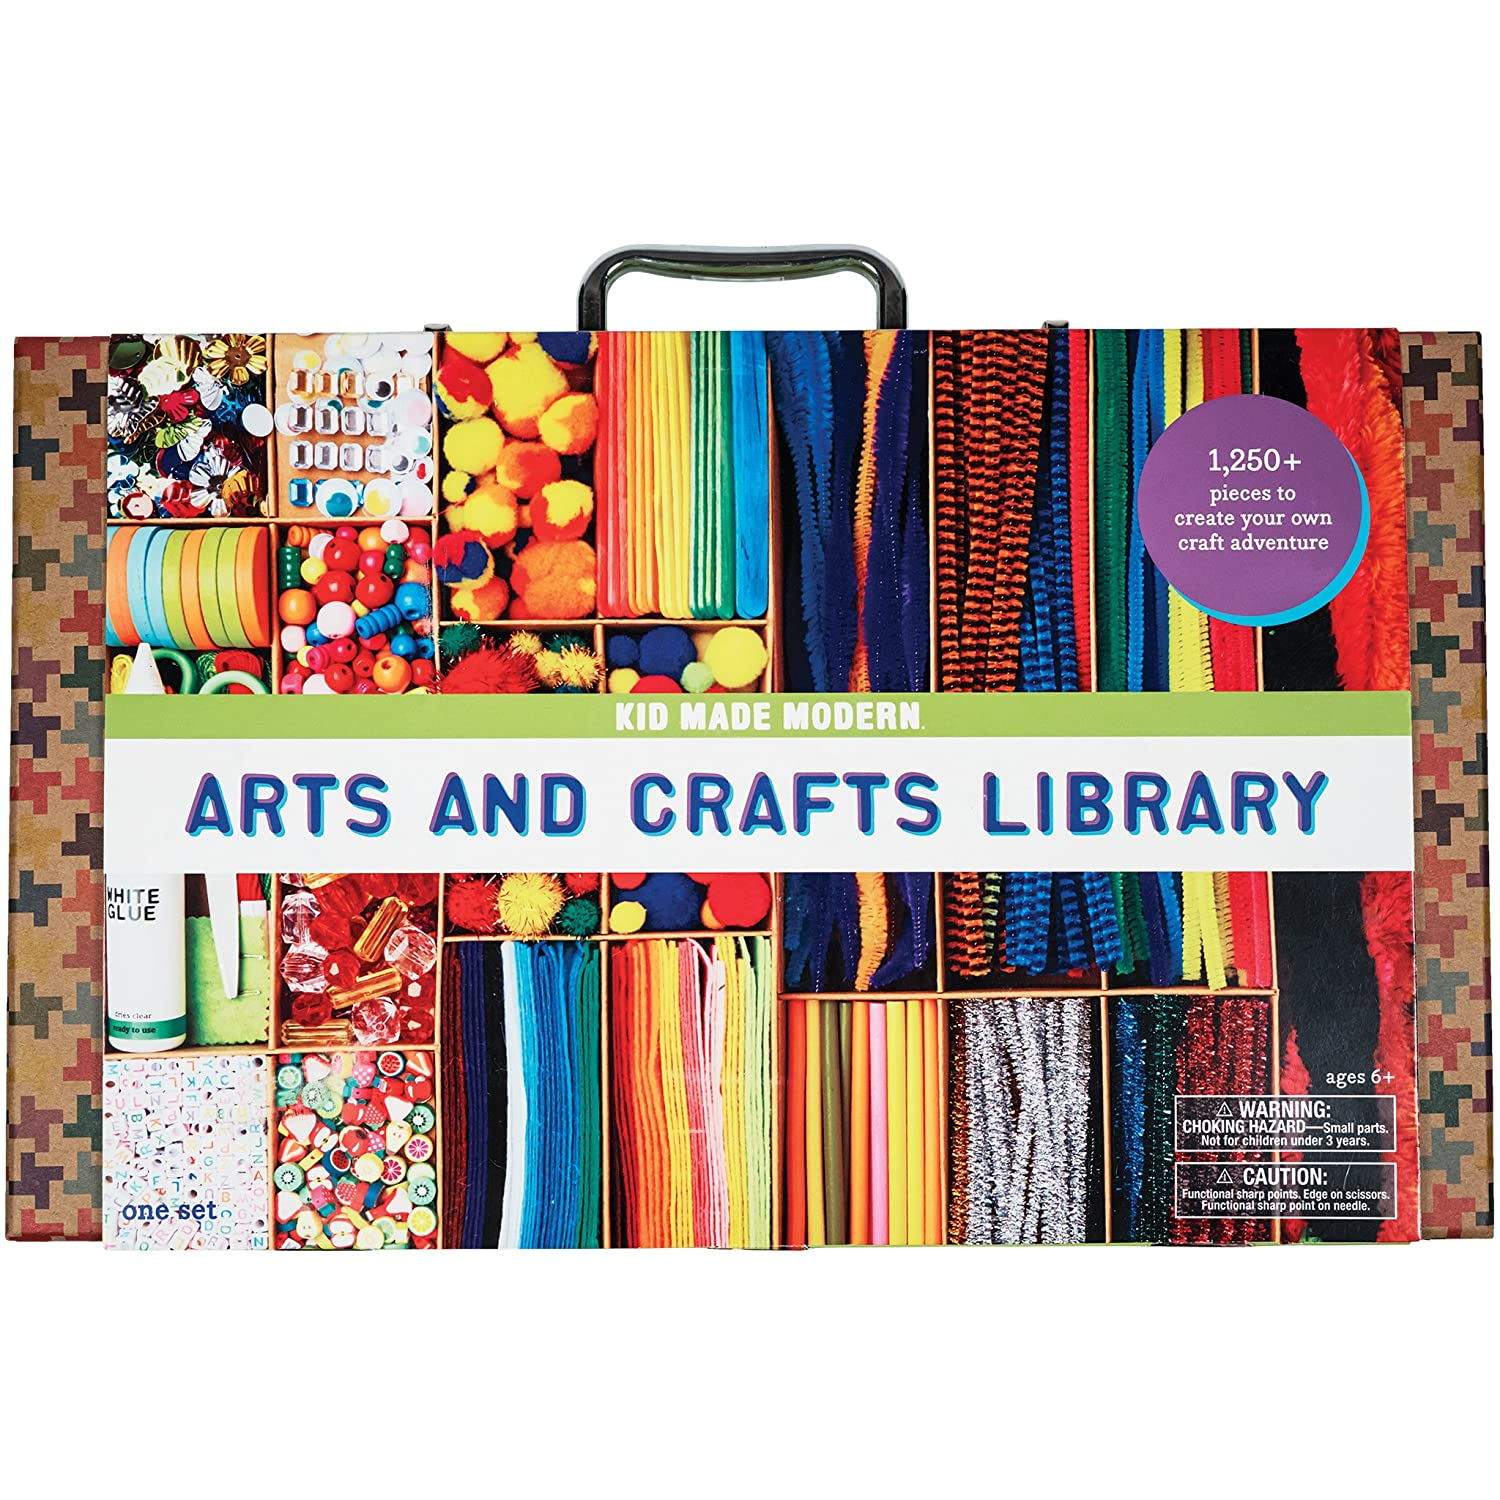 Kid Made Modern Arts And Crafts Library Set - Kid Craft Supplies, Art  Projects In A Box